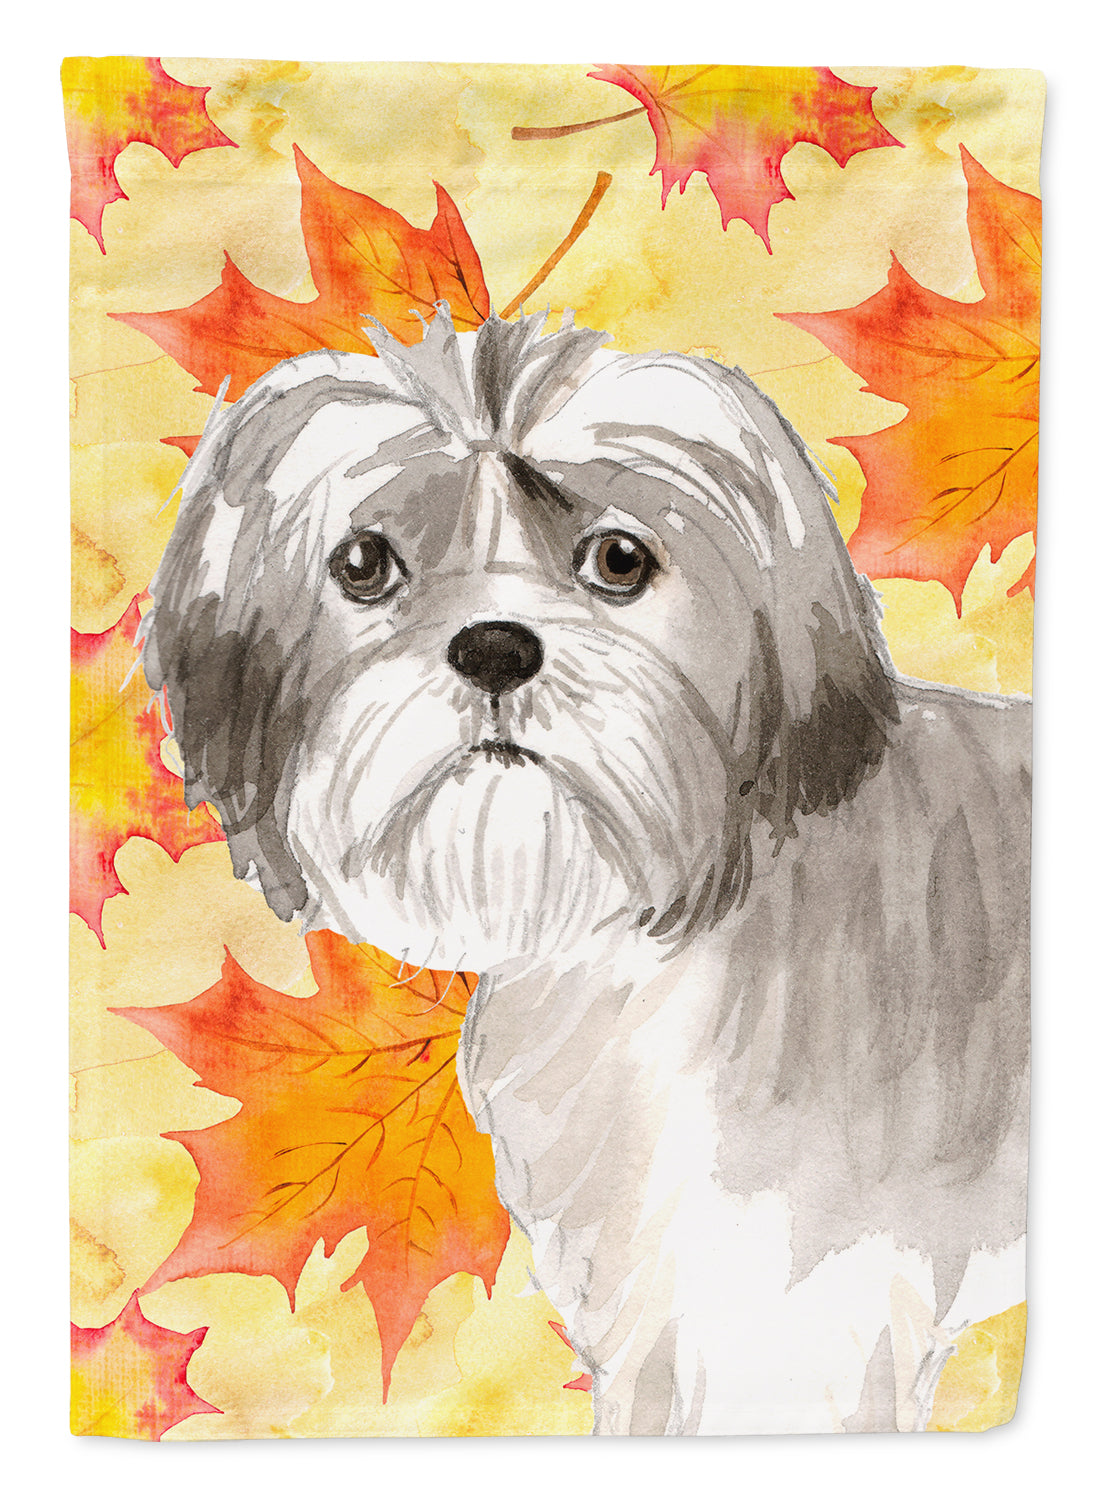 Fall Leaves Shih Tzu Puppy Flag Canvas House Size CK1825CHF by Caroline's Treasures